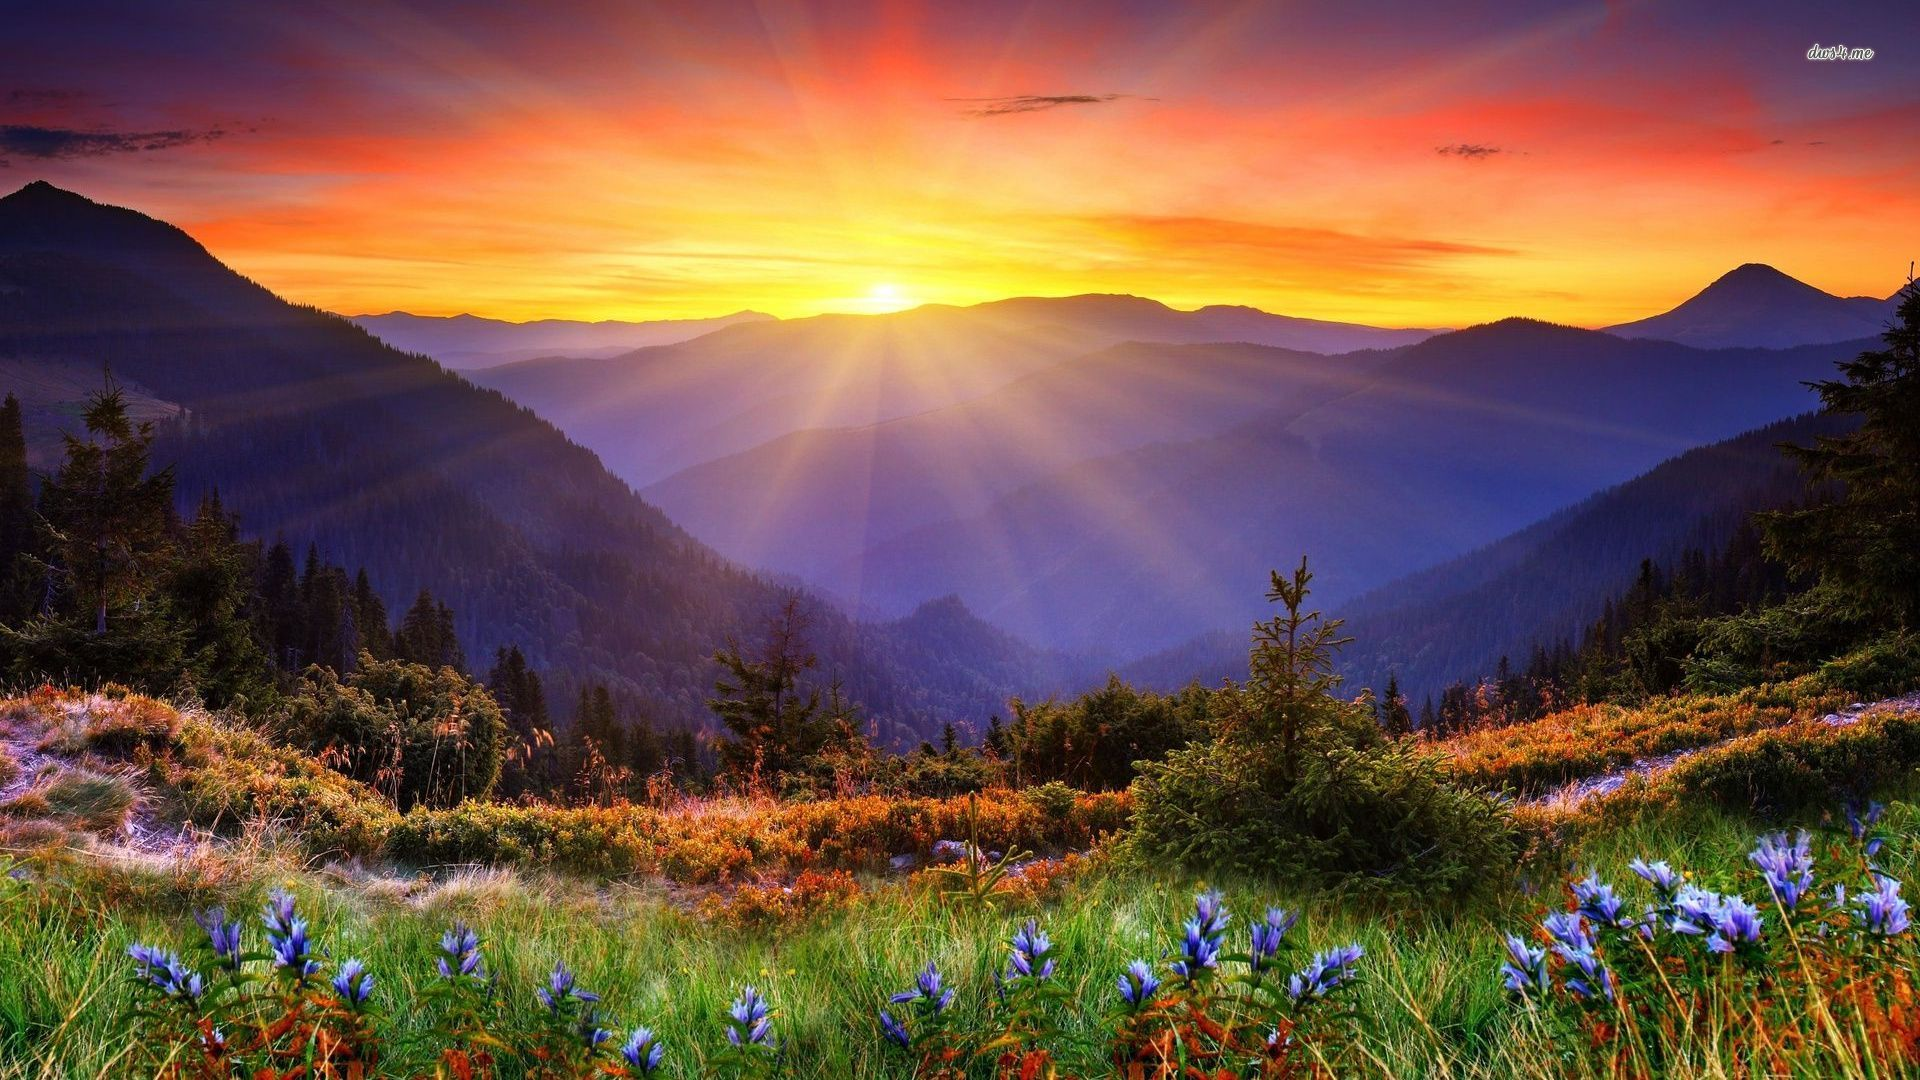 image for mountain sunrise download wallpaper favorite